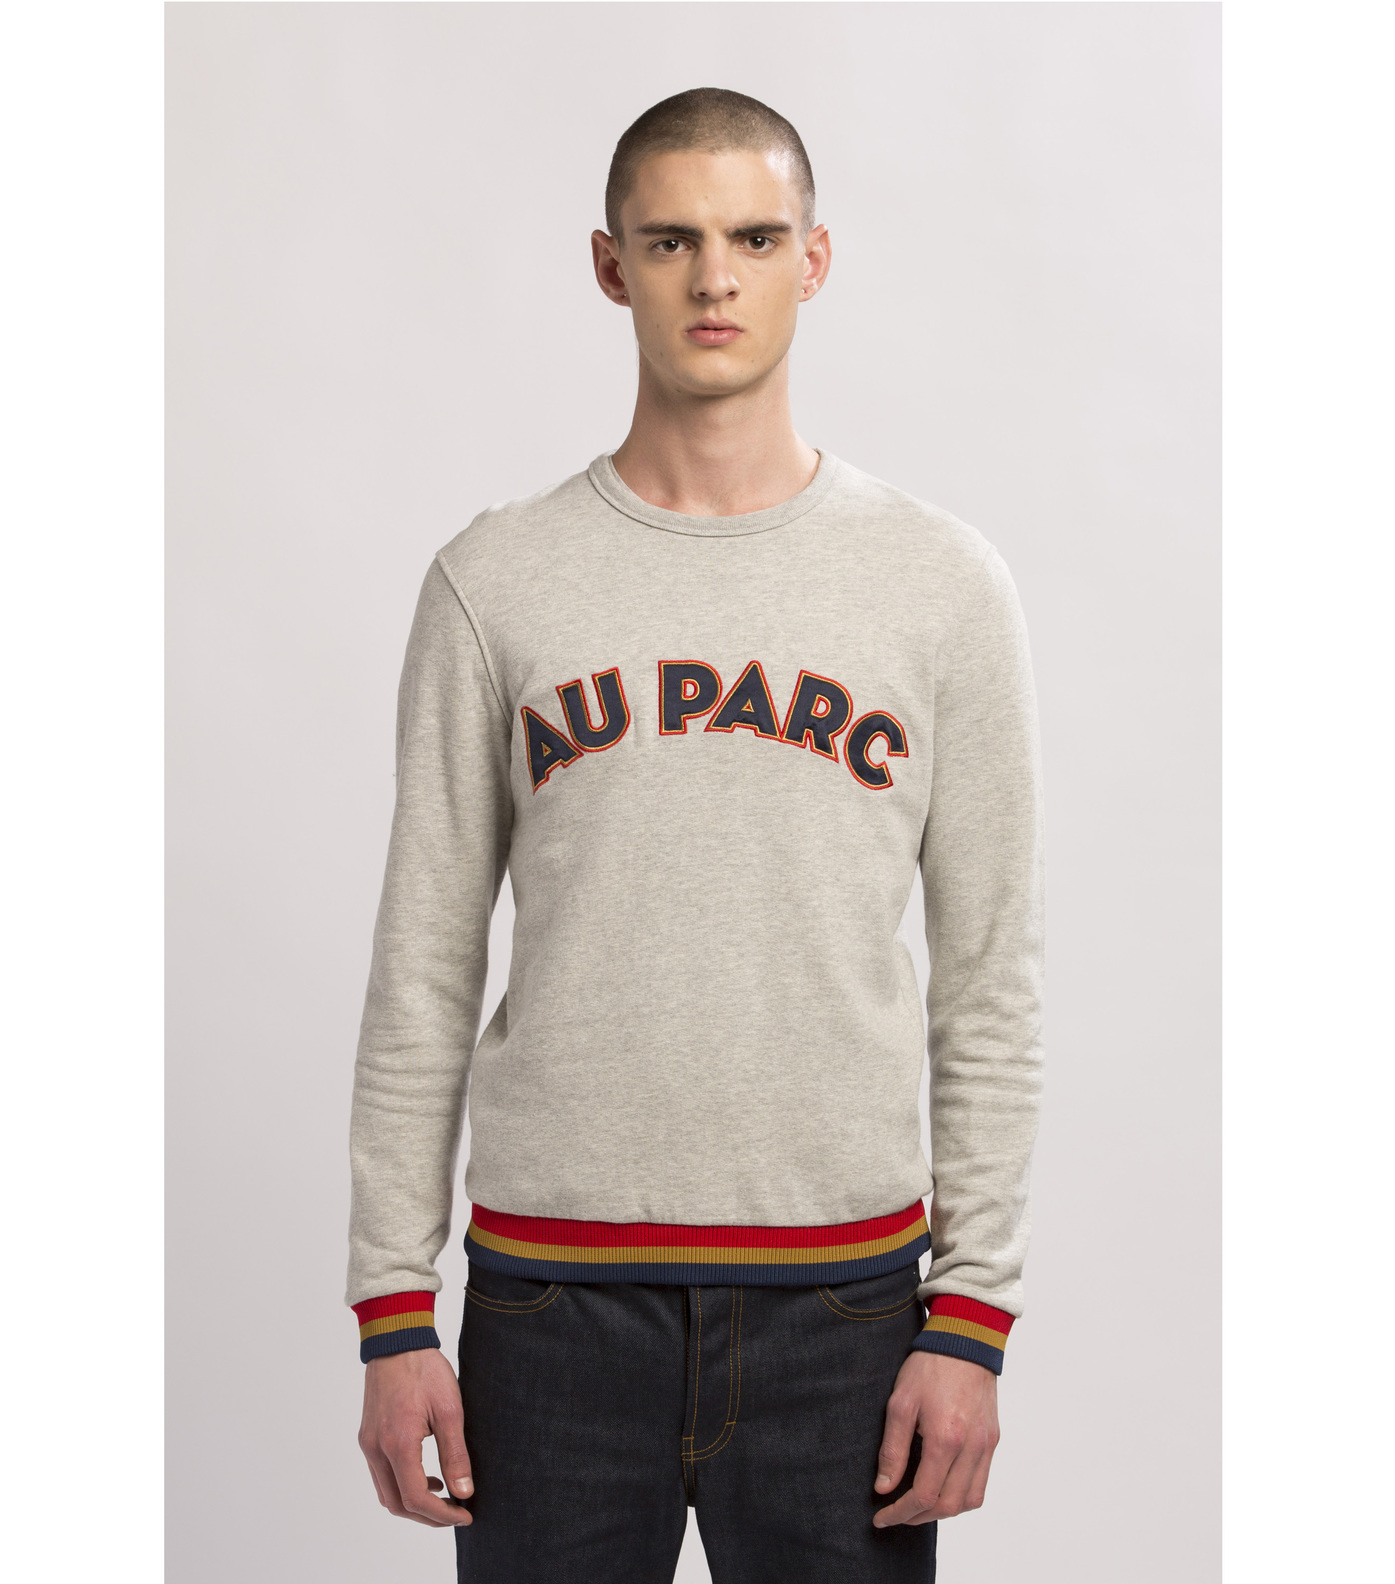 SWEAT  AU PARC  - Marl grey